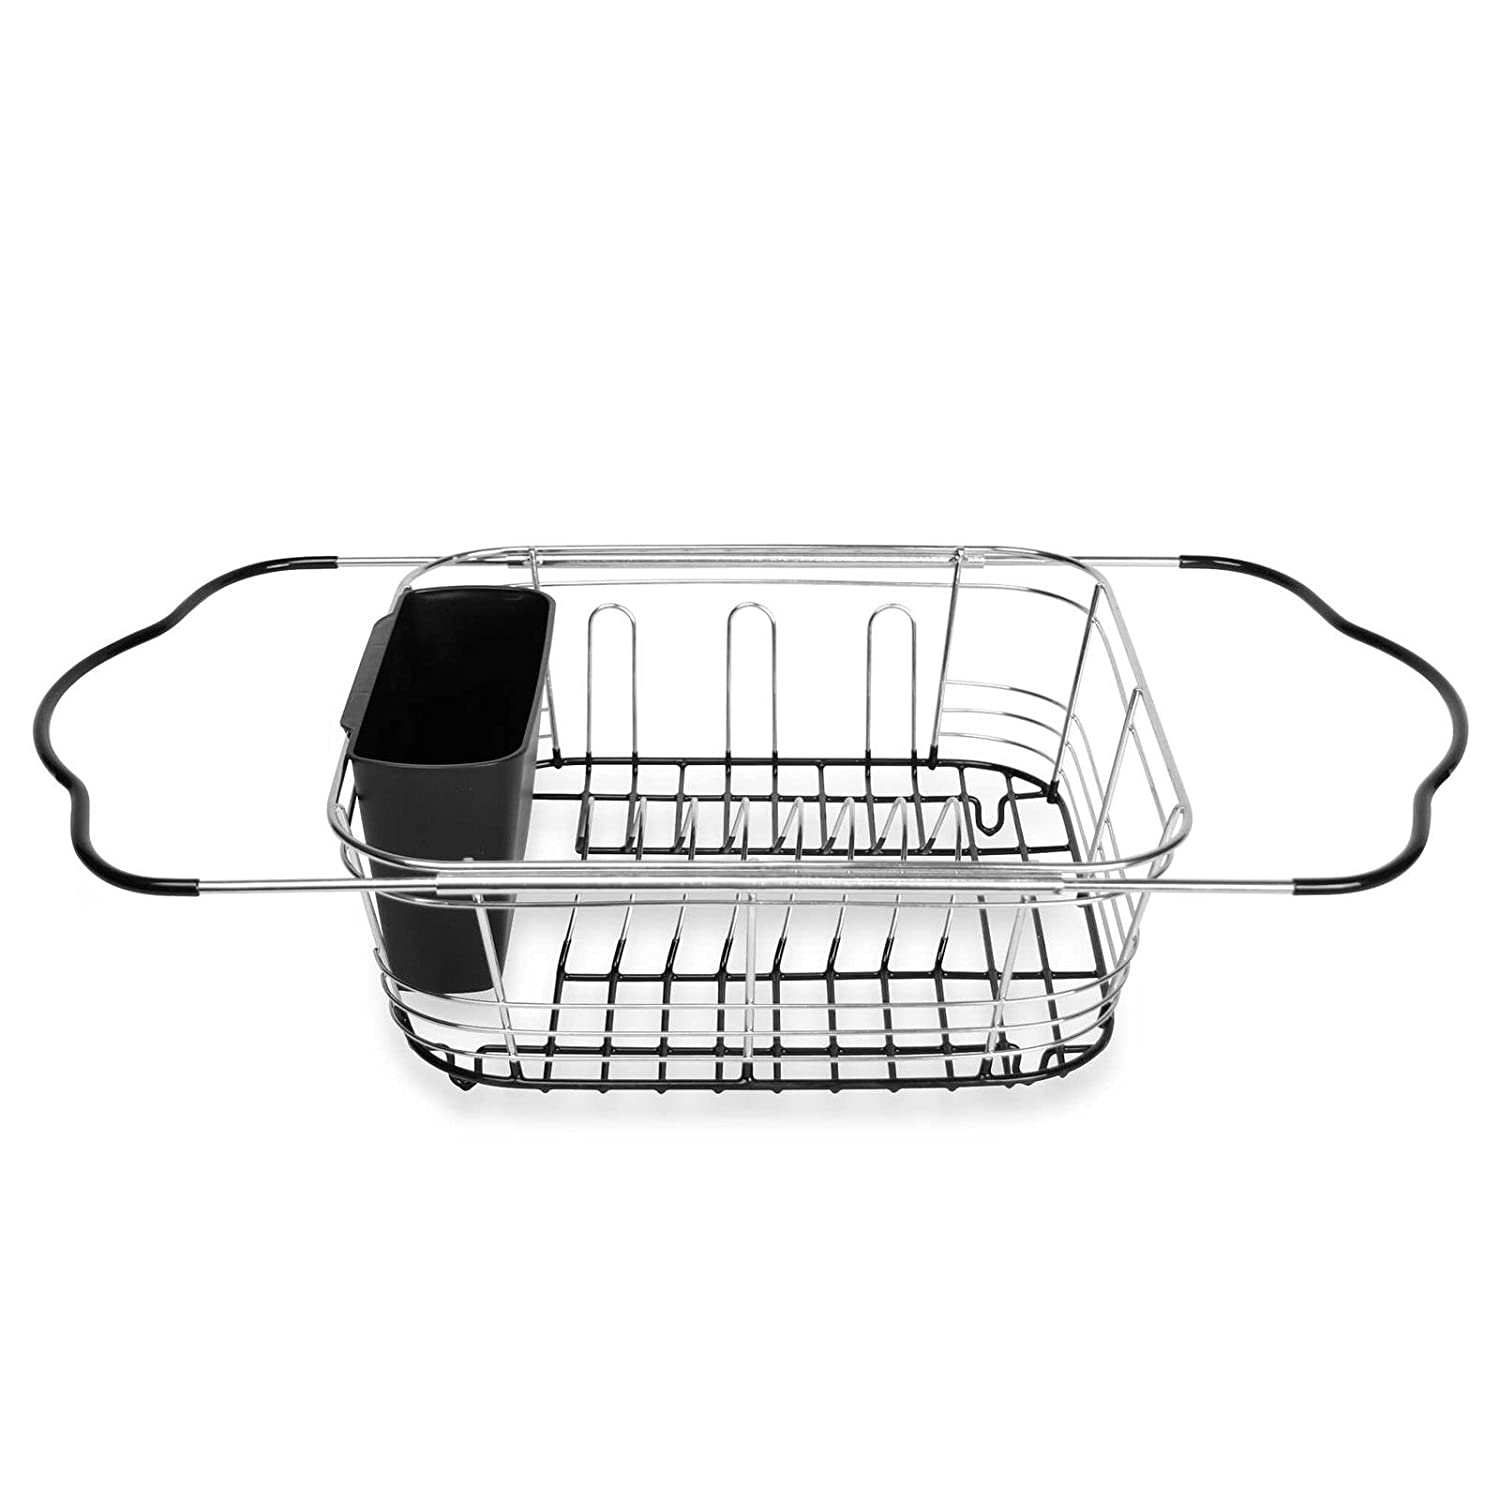 Kitchenaid 3 in 1 dish rack - Amazon Com Expandable Dish Rack Drying Utensil Holder 3 In 1 In And Over The Sink Kitchen Dining